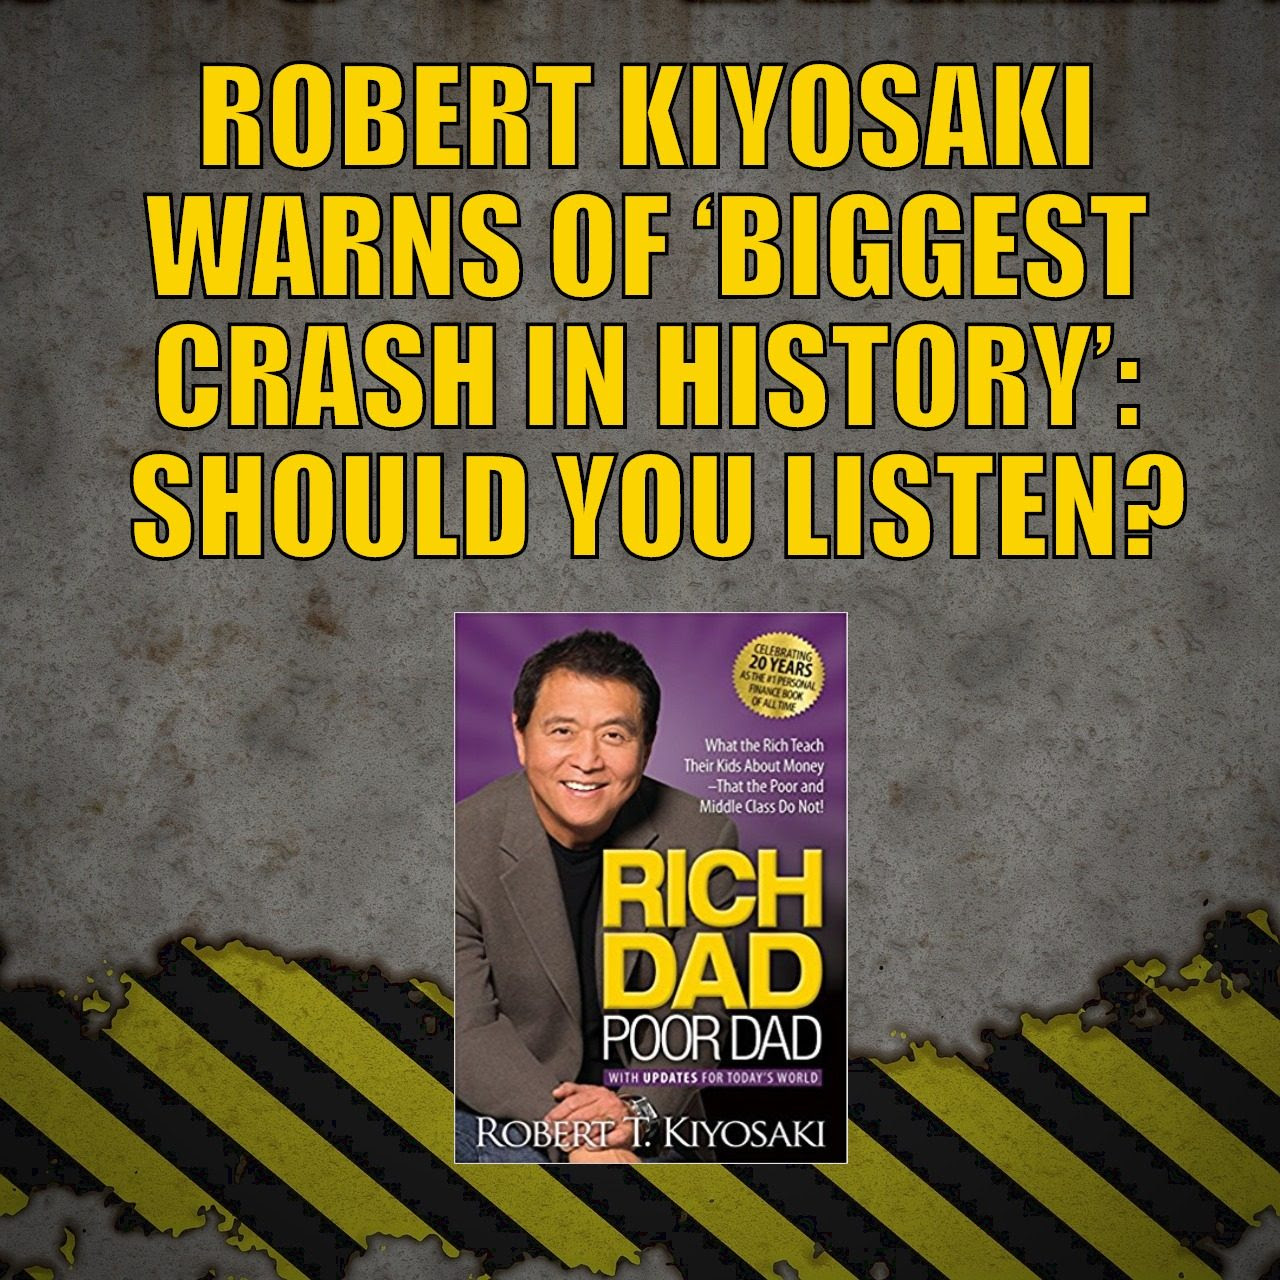 Rich Dad Poor Dad Author Robert Kiyosaki Warns Australia of 'Biggest Crash in History': Should You Listen?